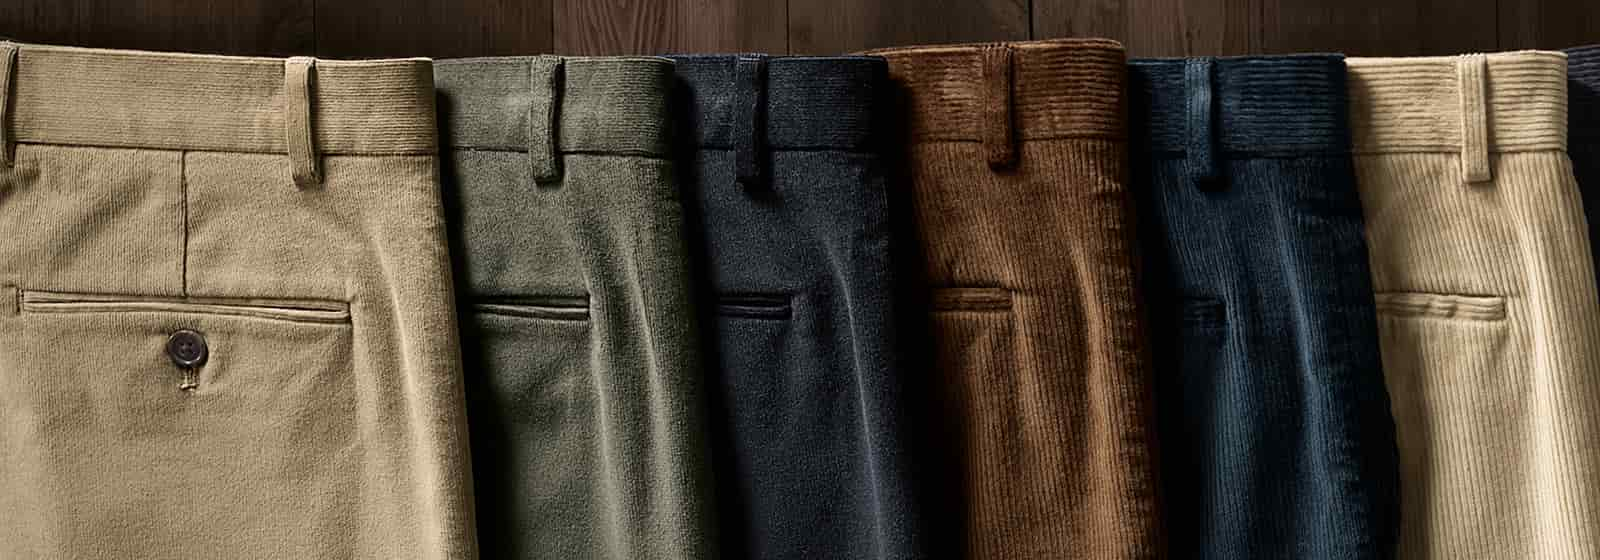 Are Men's Corduroy Pants in Style?